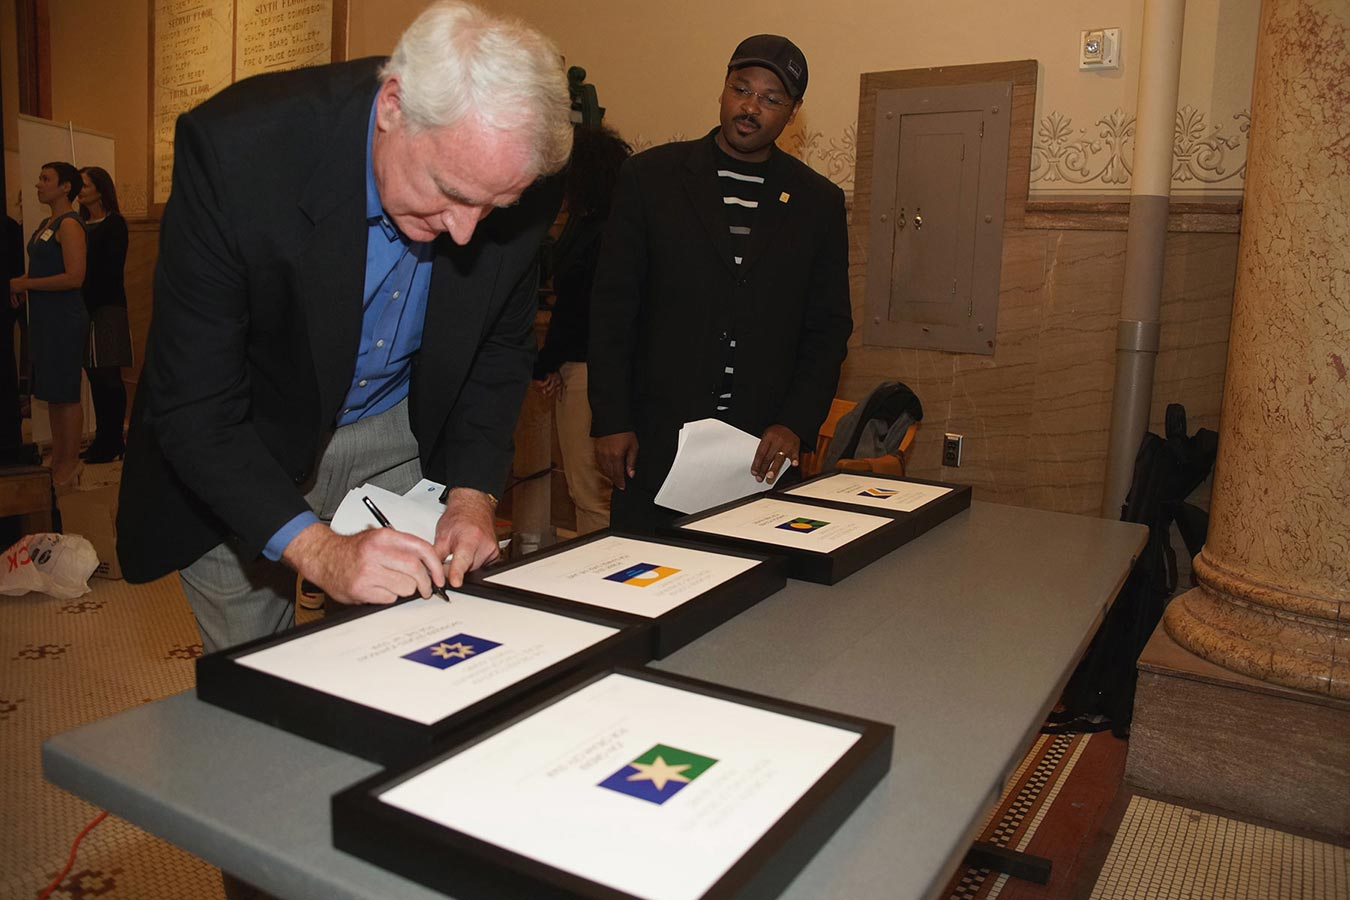 Milwaukee Mayor Tom Barrett at People's Flag of Milwaukee Exhibition - City Hall